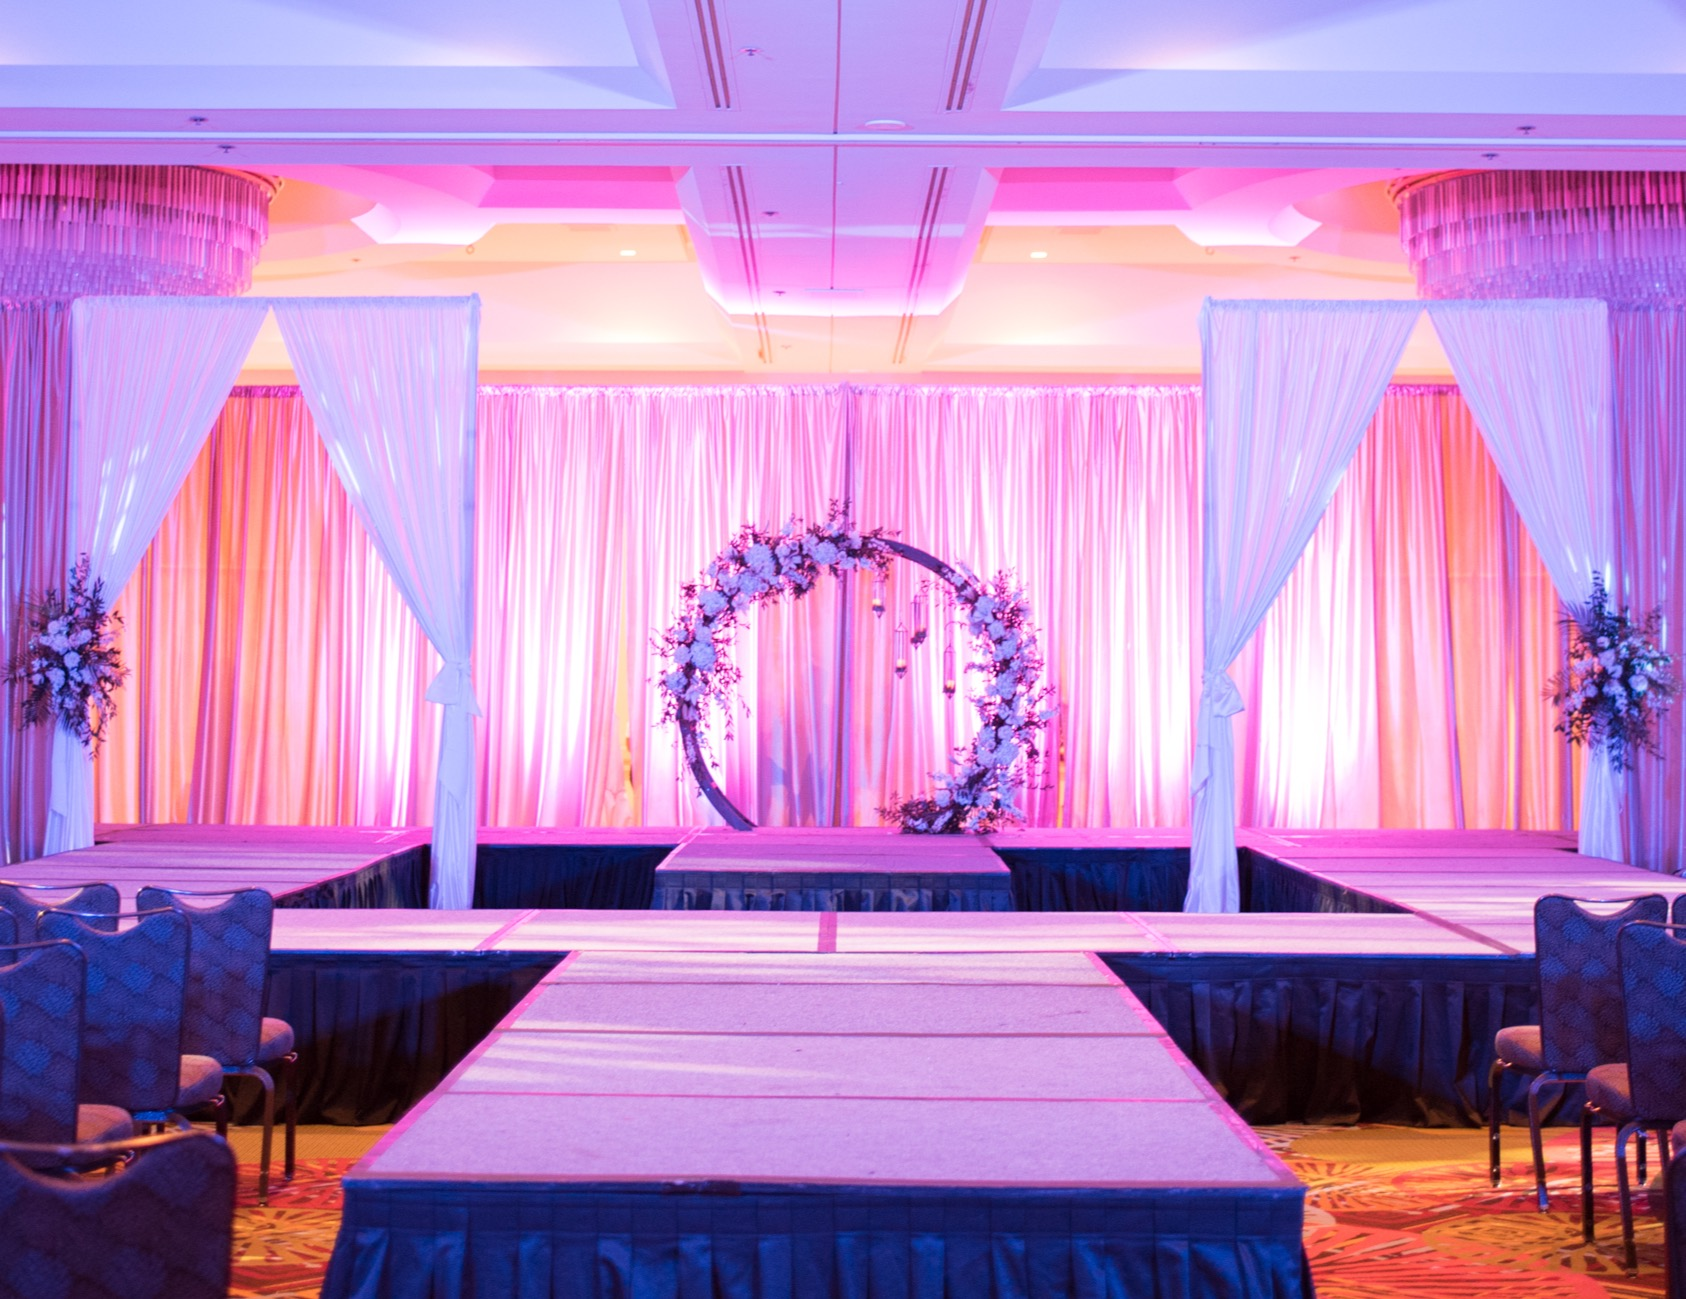 Stage lighting for a wedding fashion show